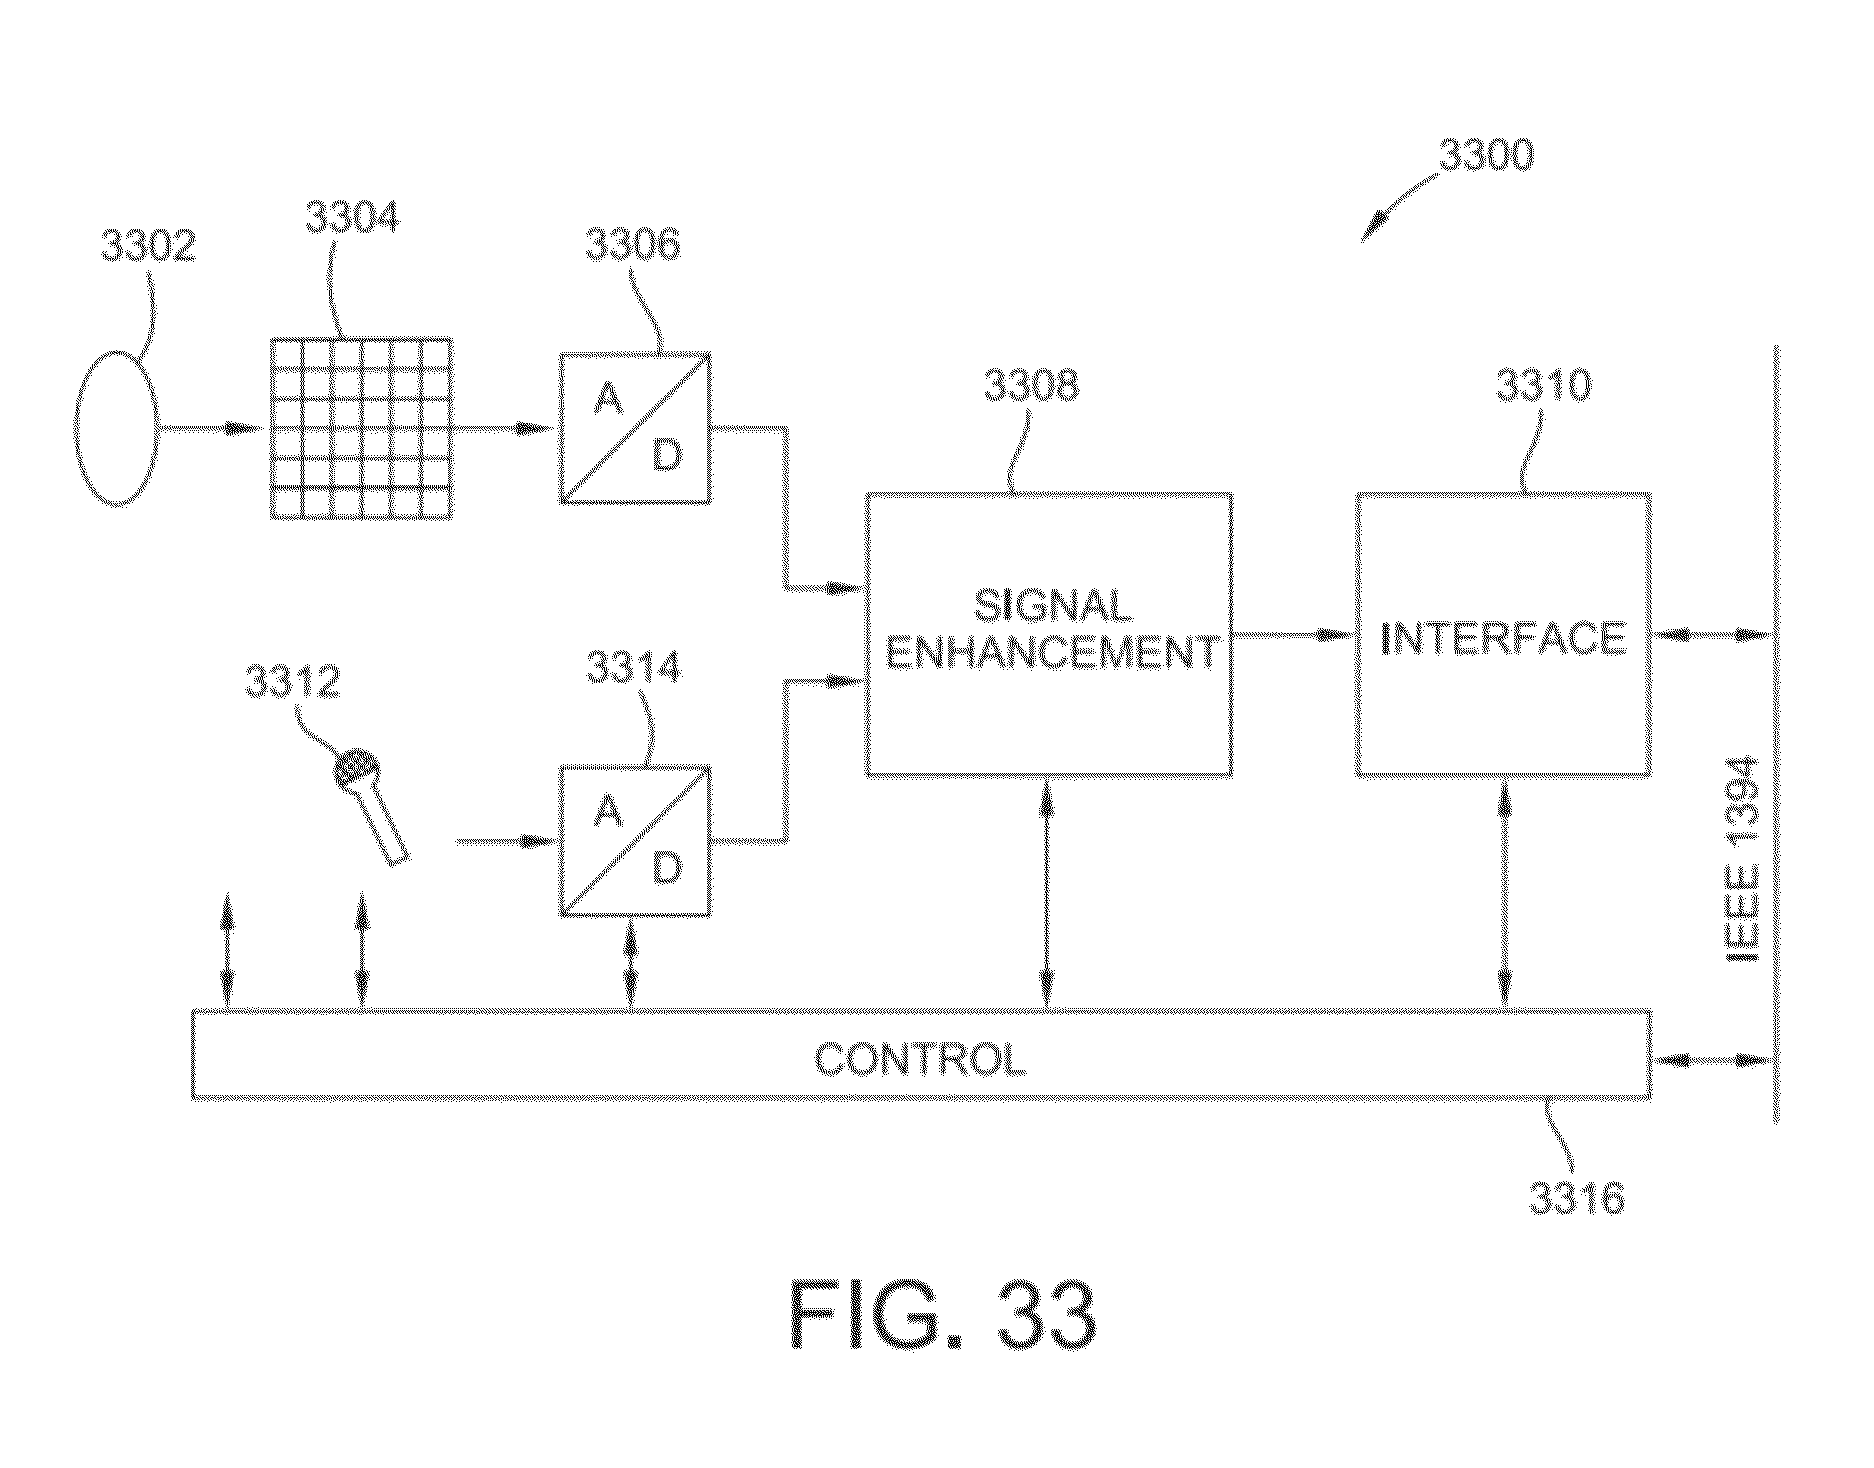 hight resolution of  patent images